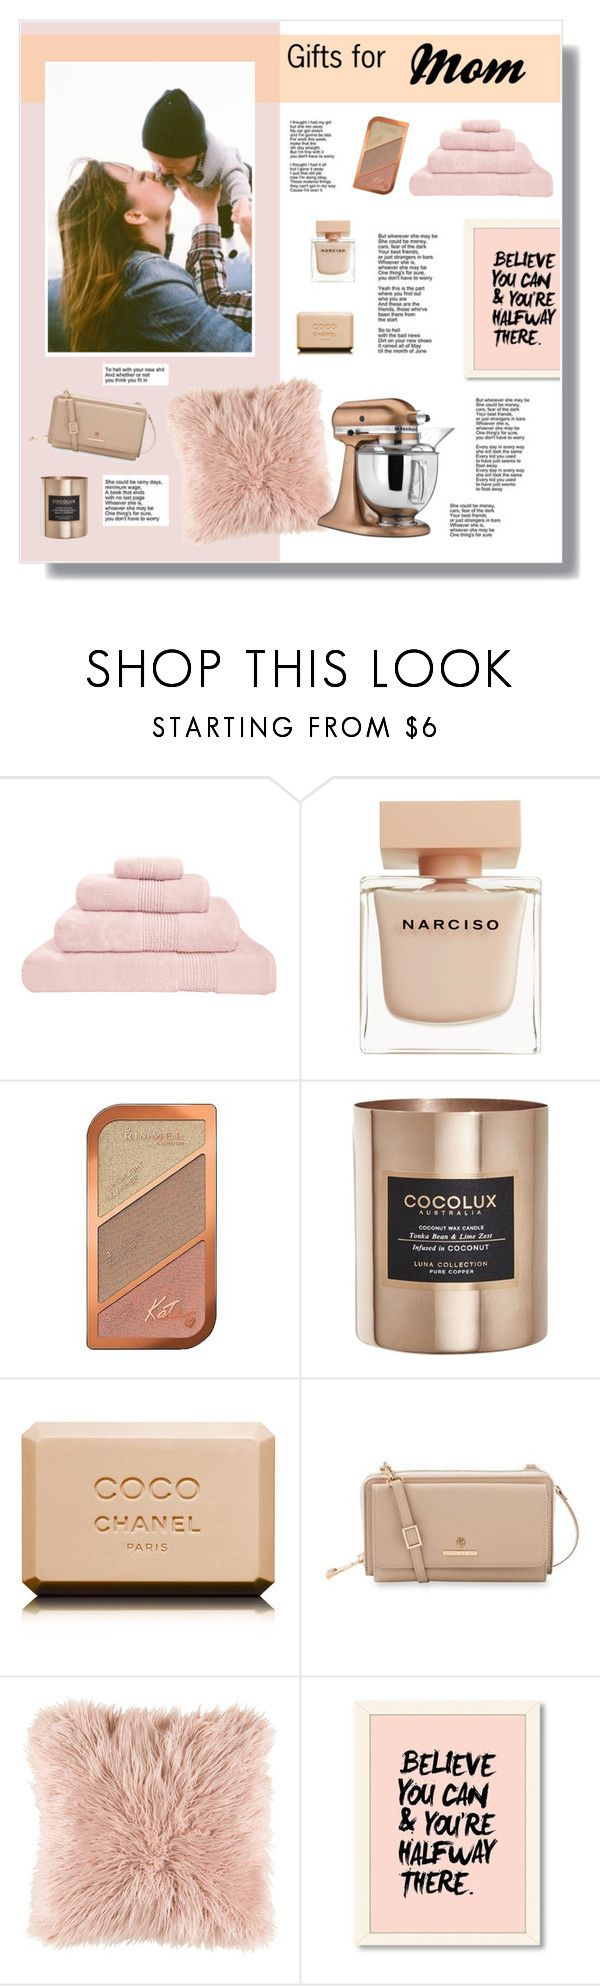 // 1336. Gifts for Mom by lilymcenvy on Polyvore featuring Spartina 449, Rimmel, Narciso Rodriguez, Chanel, Surya, KitchenAid, Hamam and Cocolux